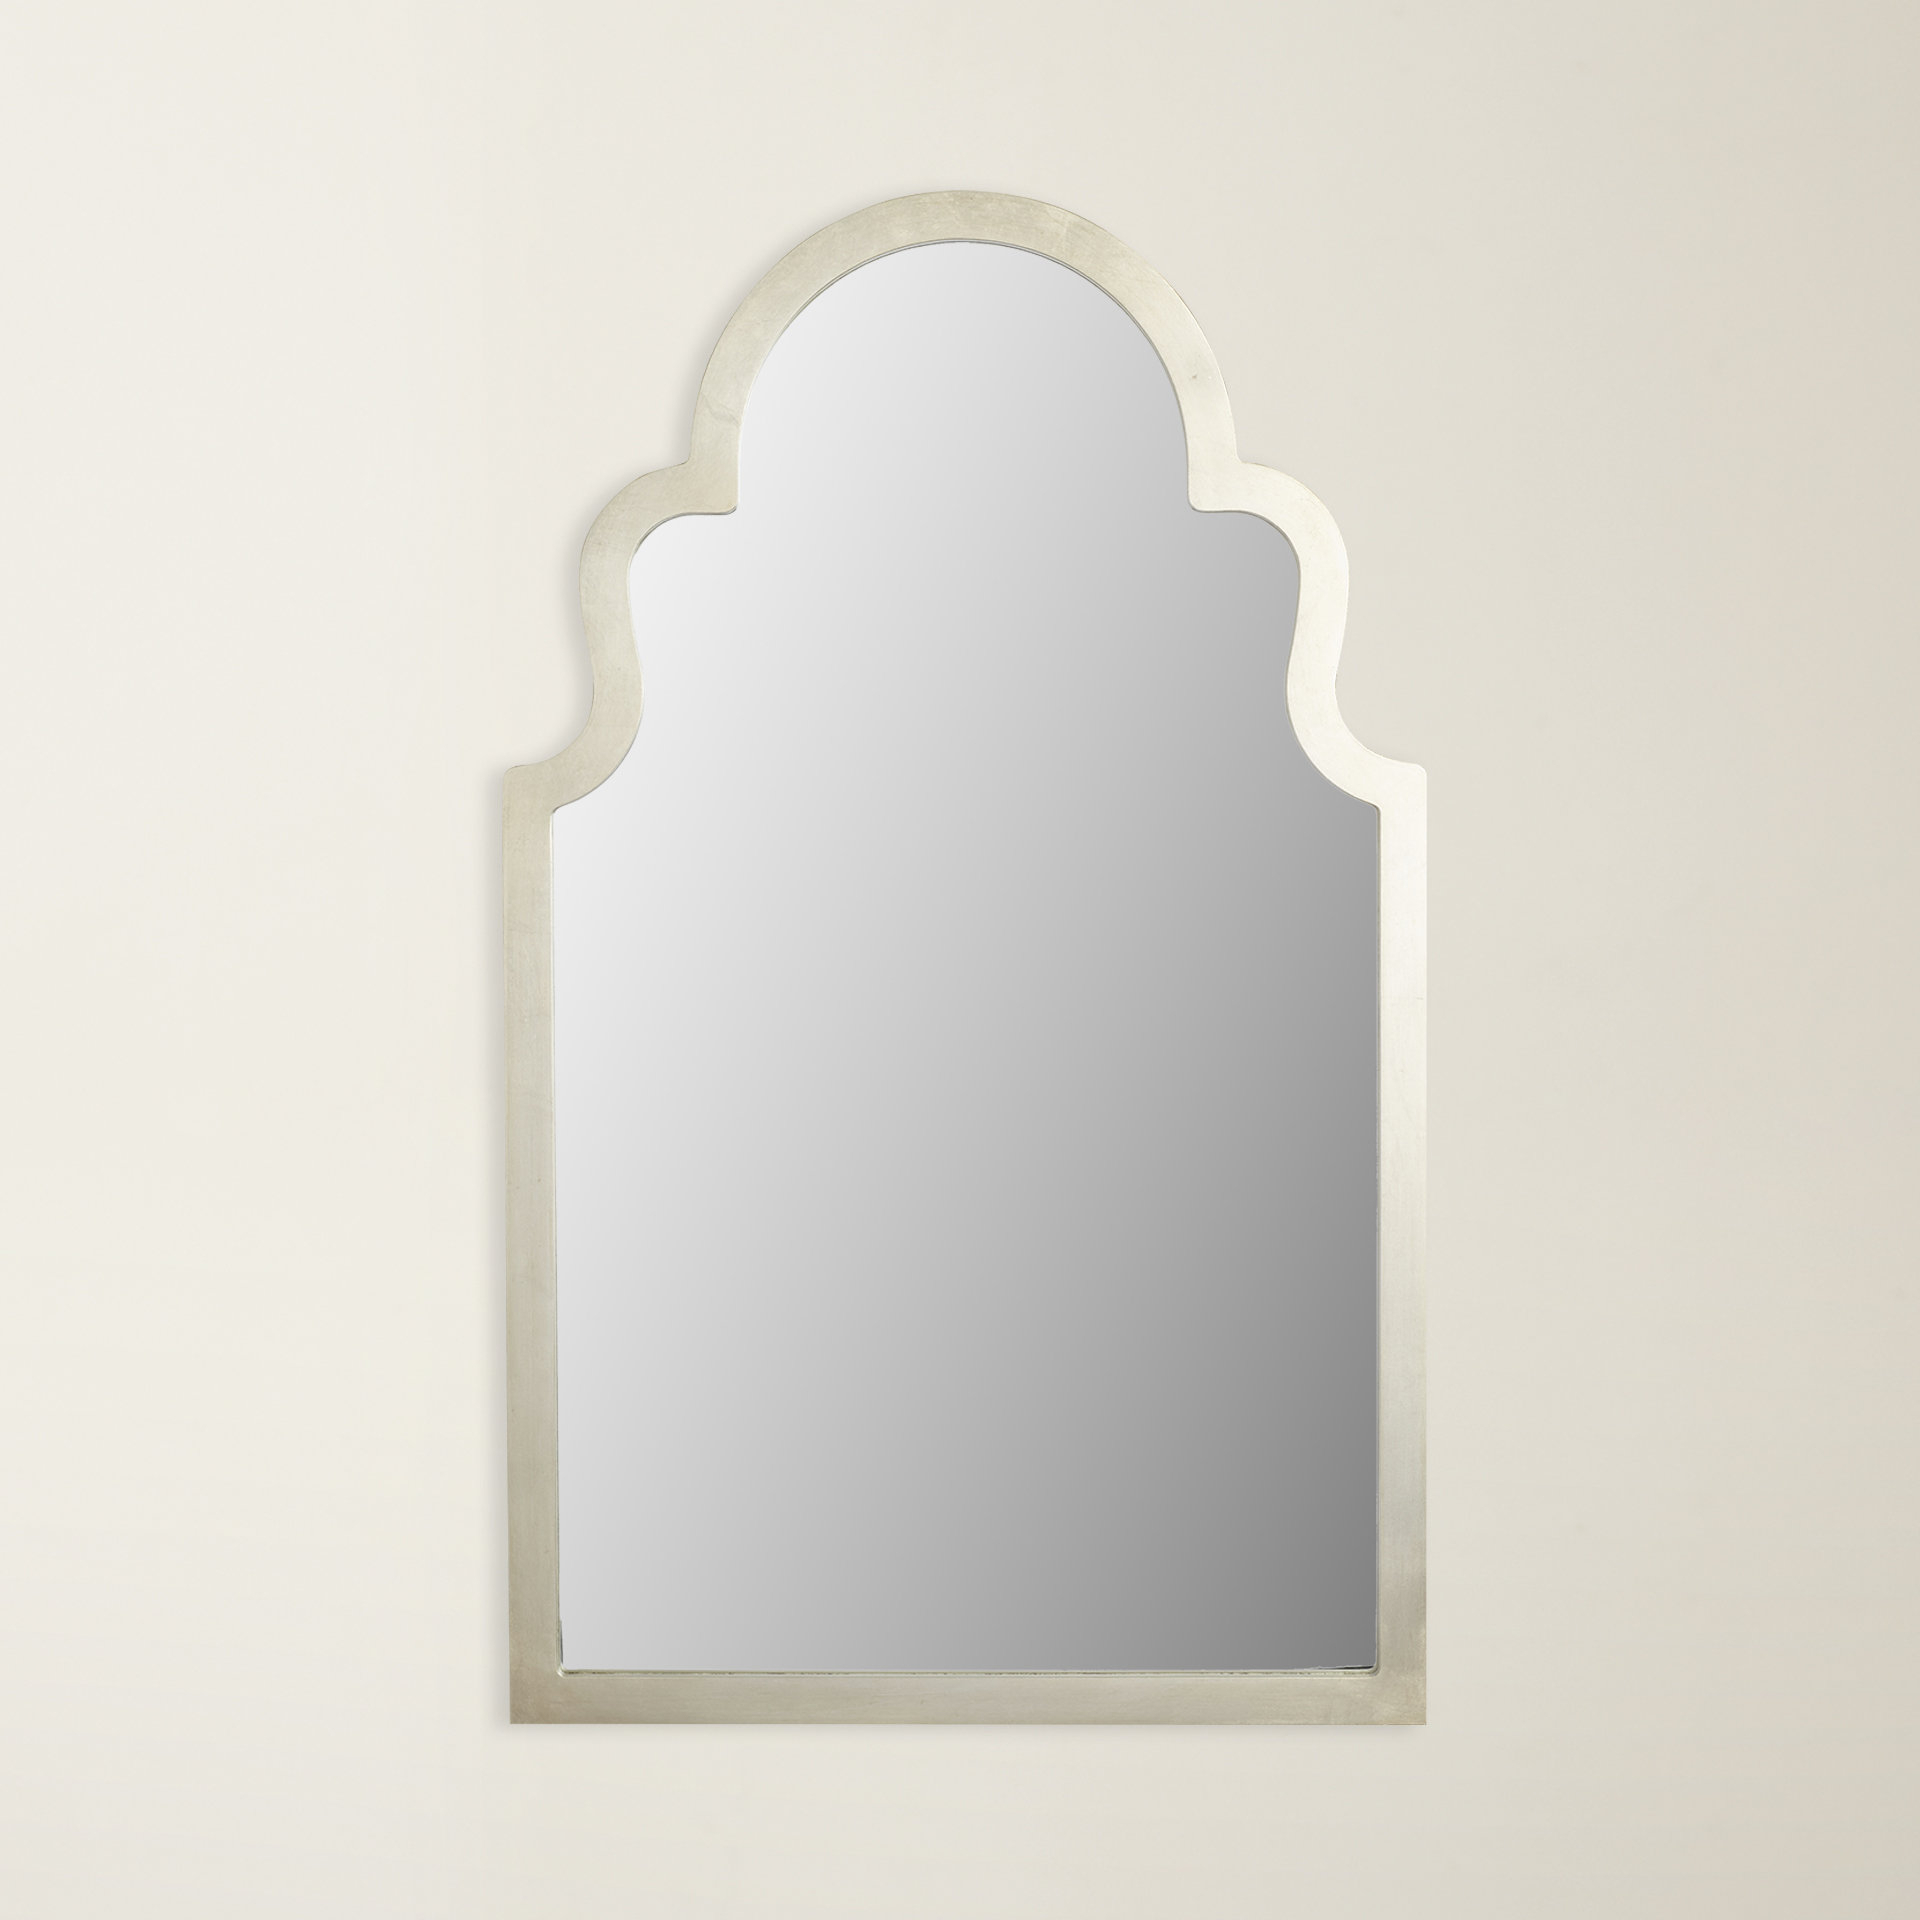 Latest Arch Top Vertical Wall Mirror Intended For Arch Top Vertical Wall Mirrors (View 12 of 20)